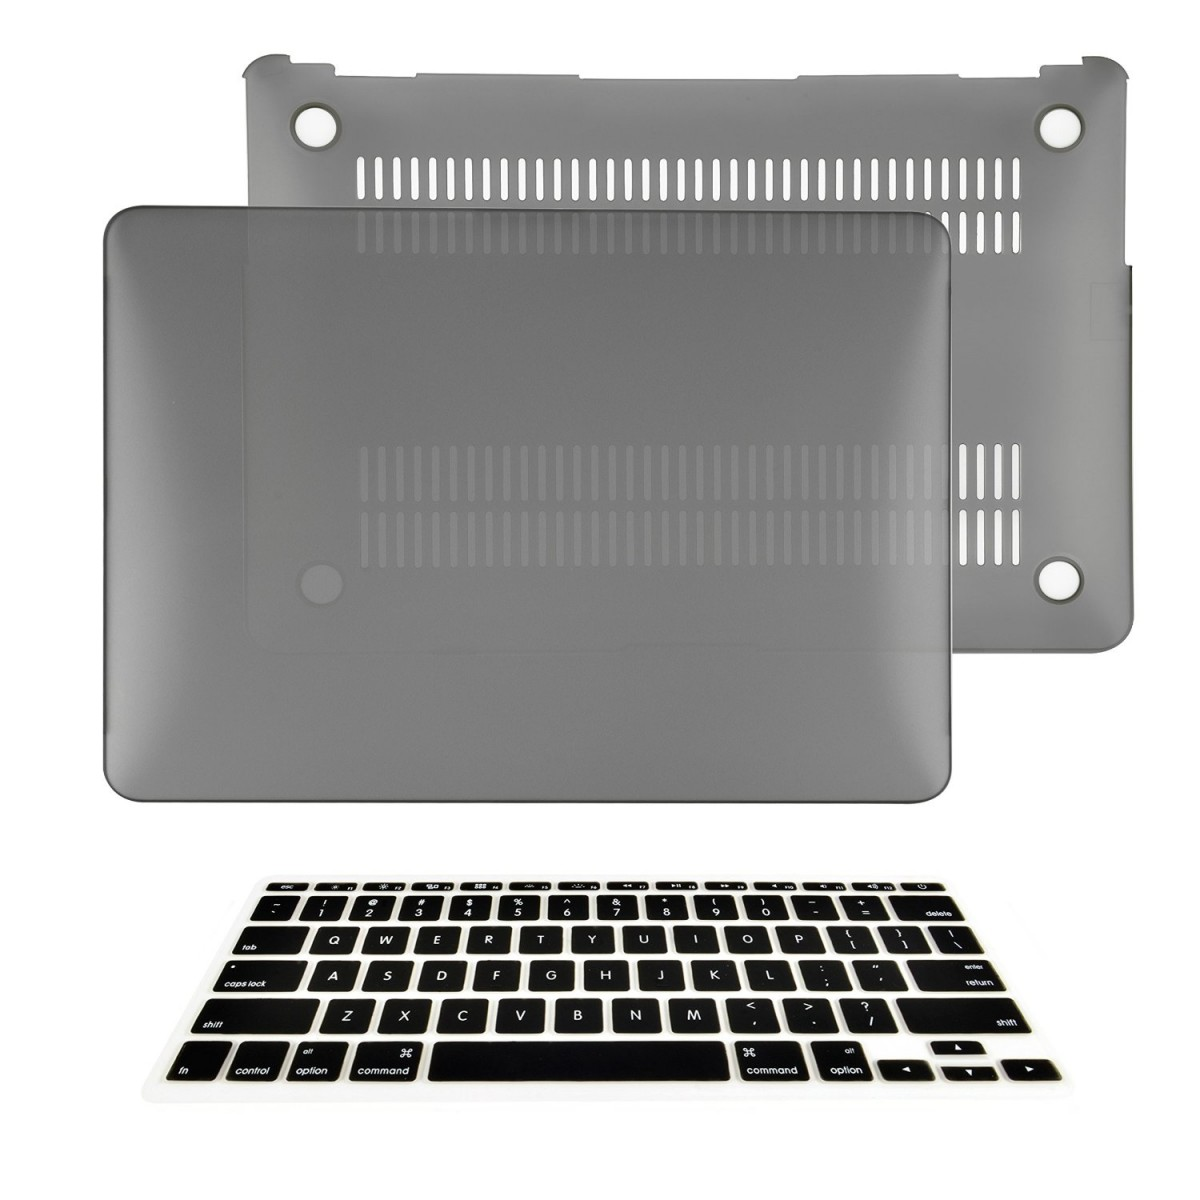 2096d2a4d569 TOP CASE - 2 in 1 Bundle Deal Air 11-Inch Rubberized Hard Case Cover and  Matching Color Keyboard Cover for Macbook Air 11